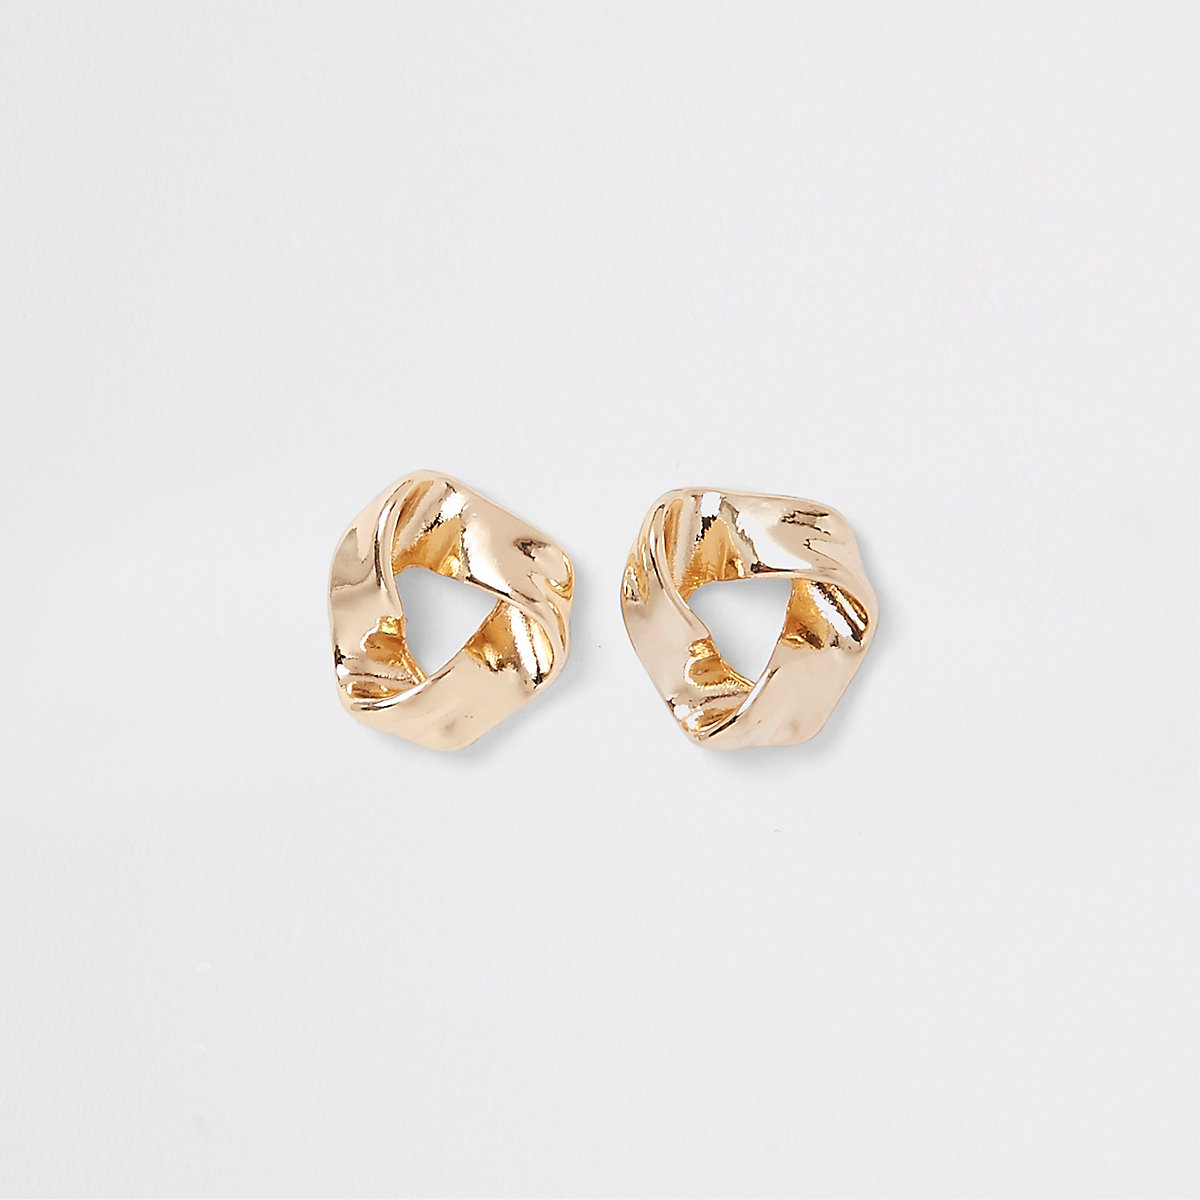 Gold color wavy triangle stud earrings